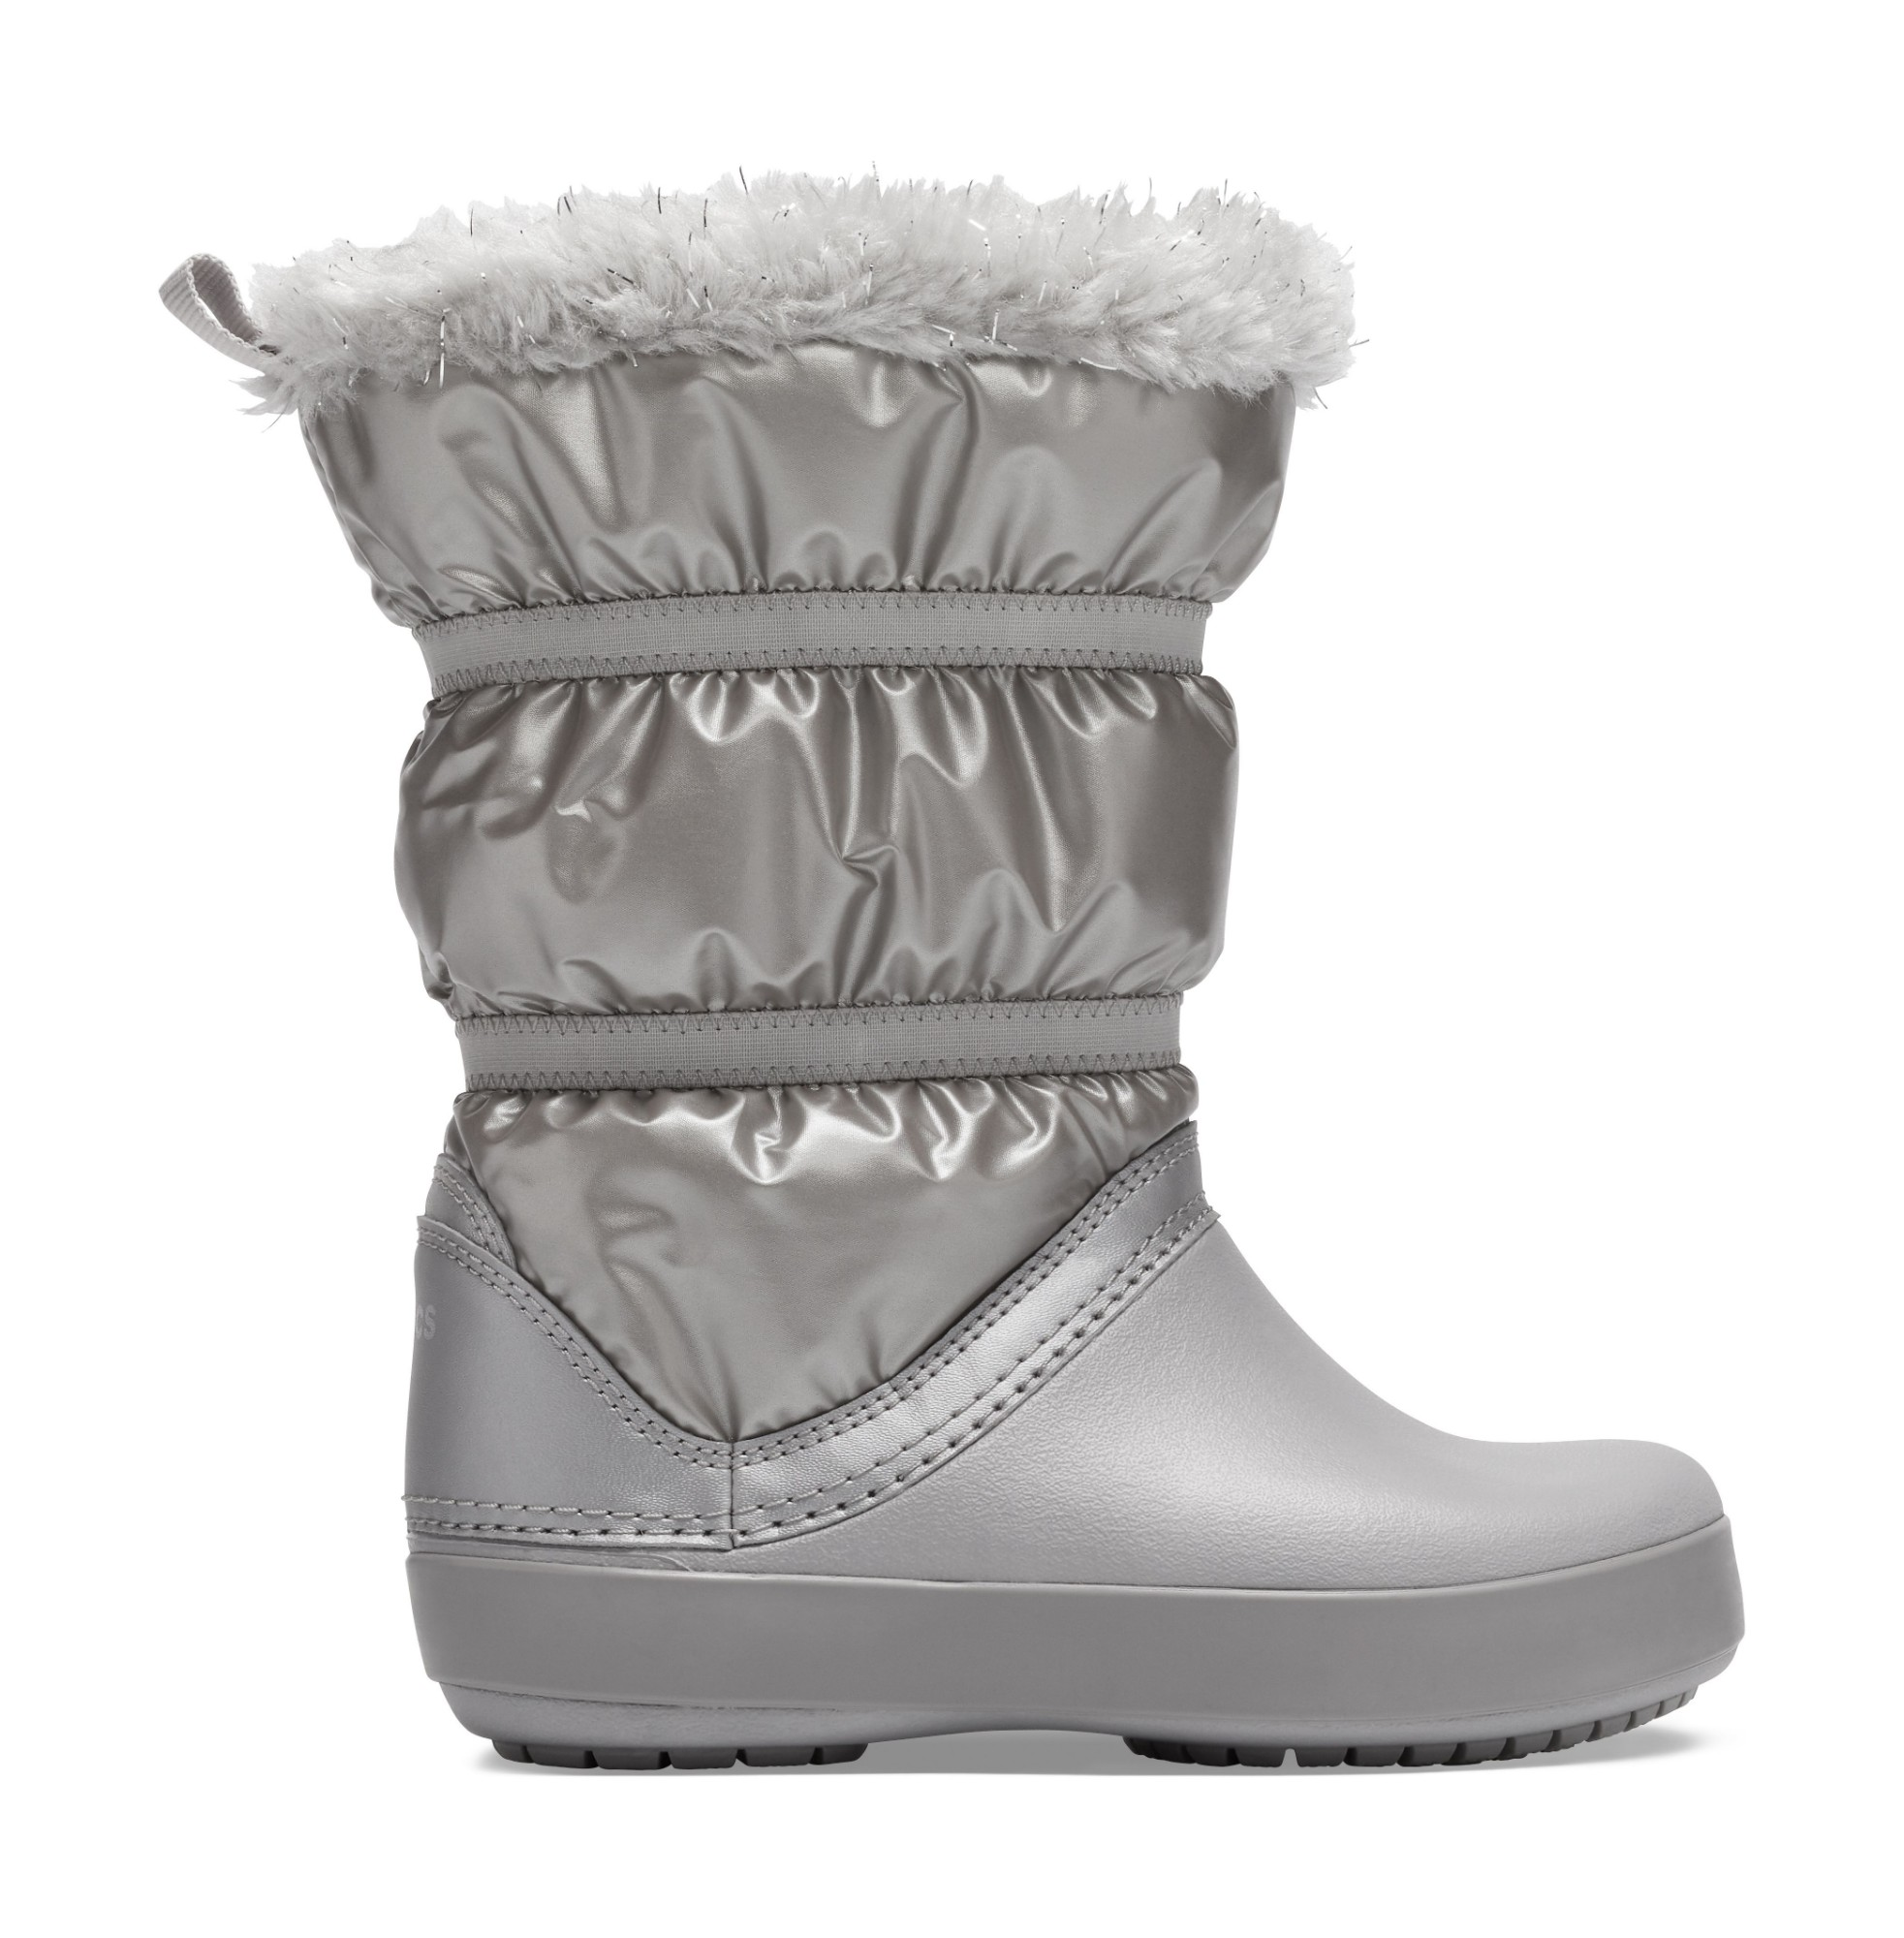 Crocs™ Crocband LodgePoint Metallic Boot Girl's Silver Metallic 29